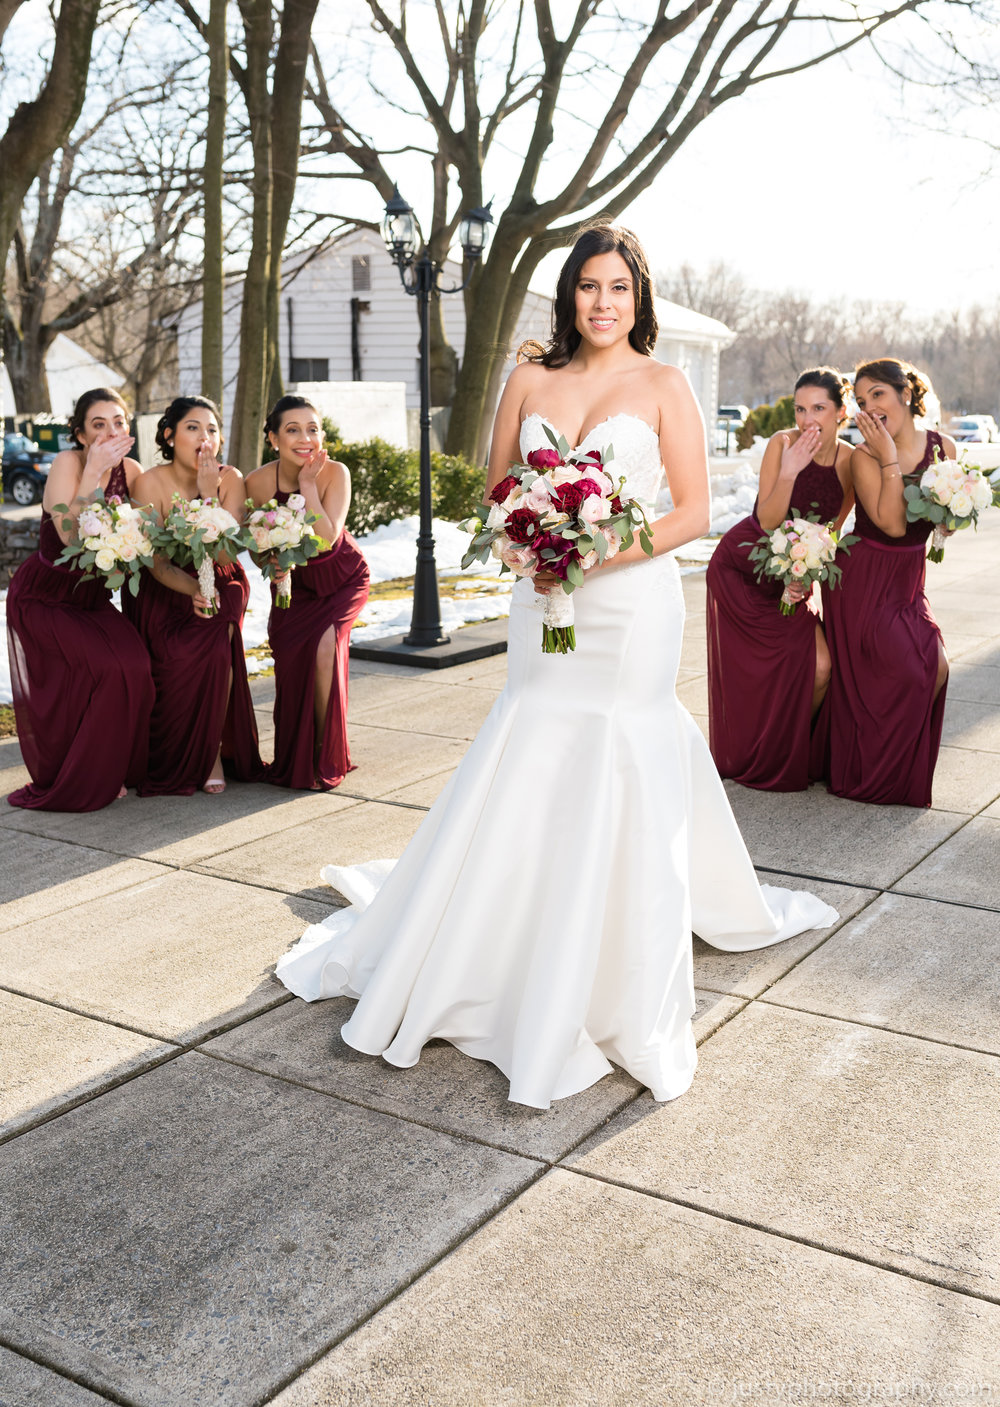 Ceresville Mansion Wedding Photos - Bride and Bridesmaids 26.jpg